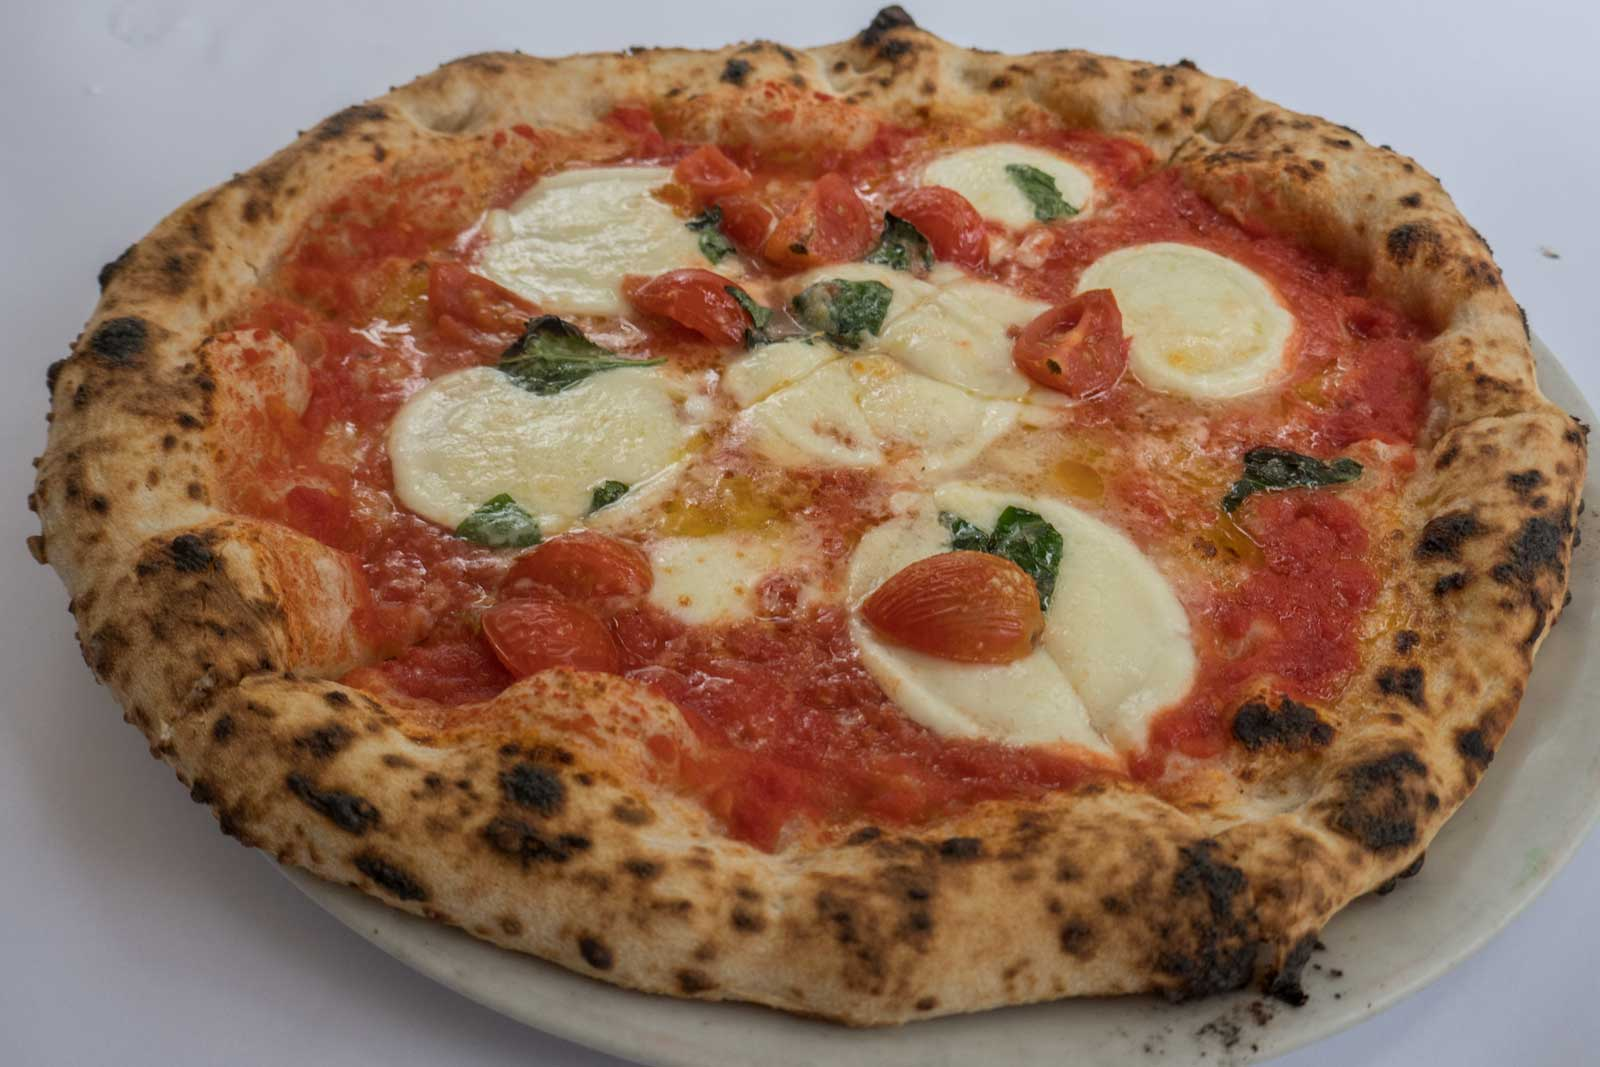 Bufalina pizza at Lucio Pizzeria Darlinghurst Sydney Australia